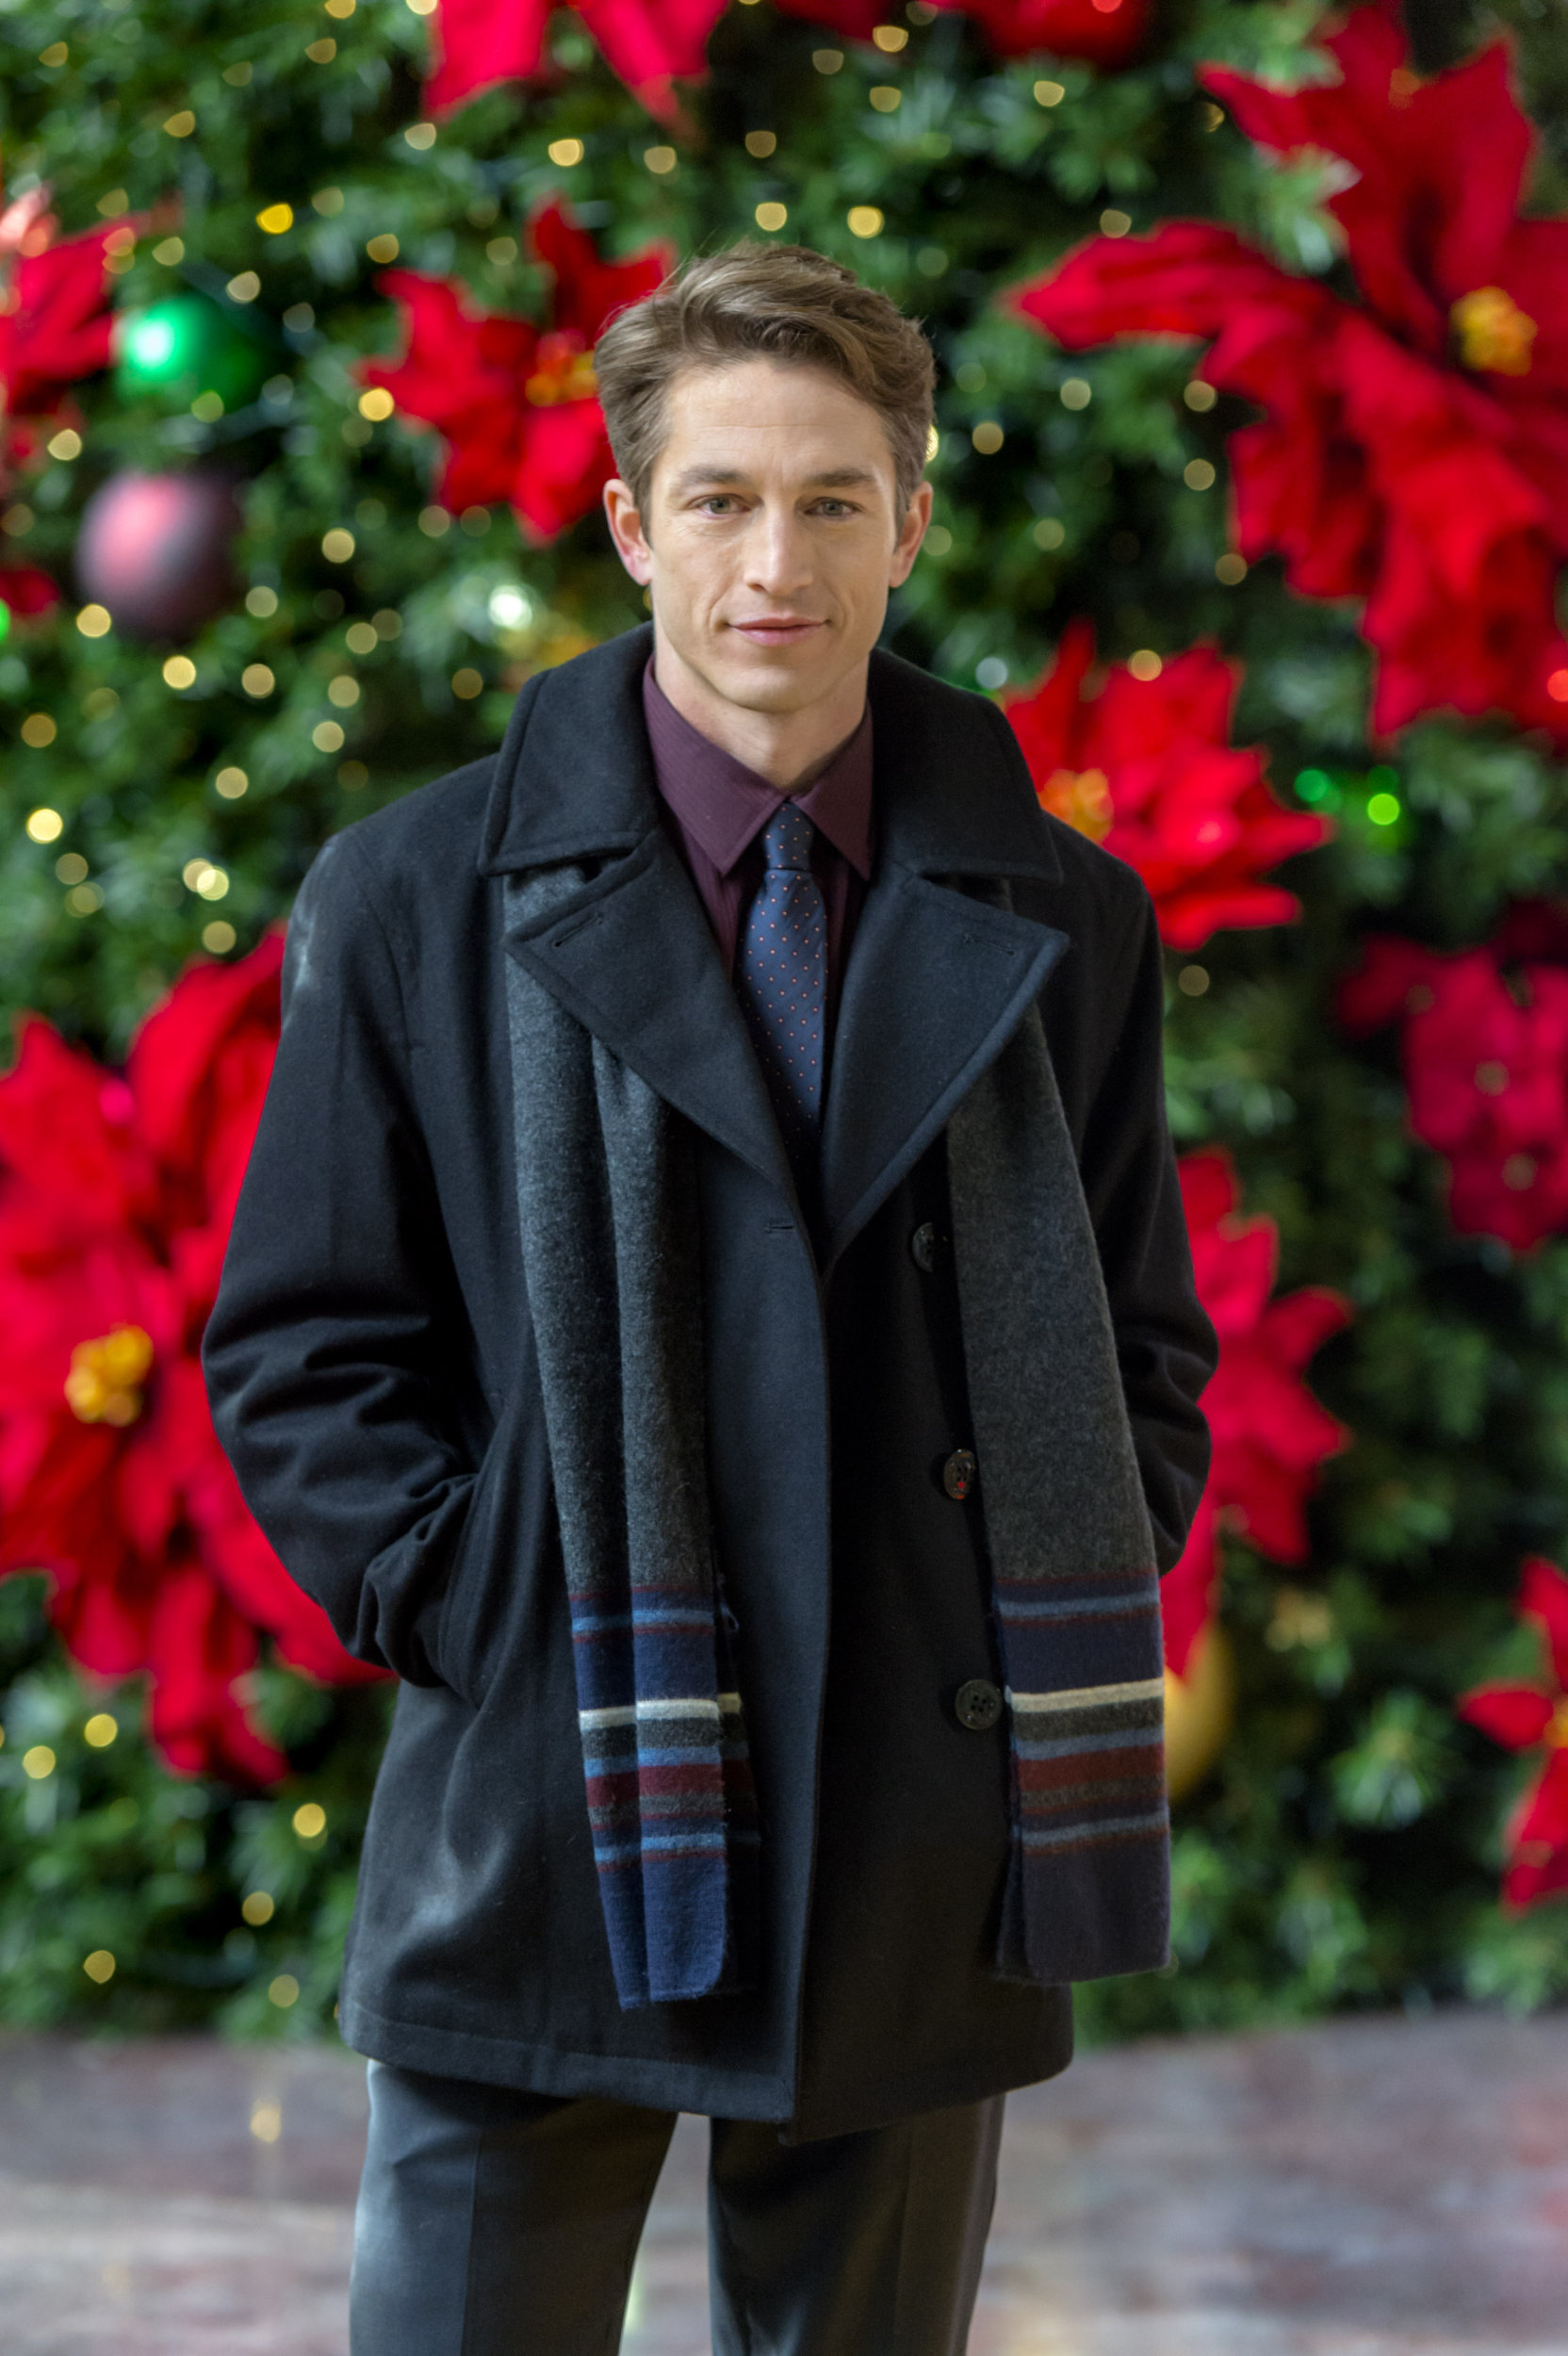 Sharing Christmas Hallmark.Bobby Campo On Sharing Christmas Hallmark Channel